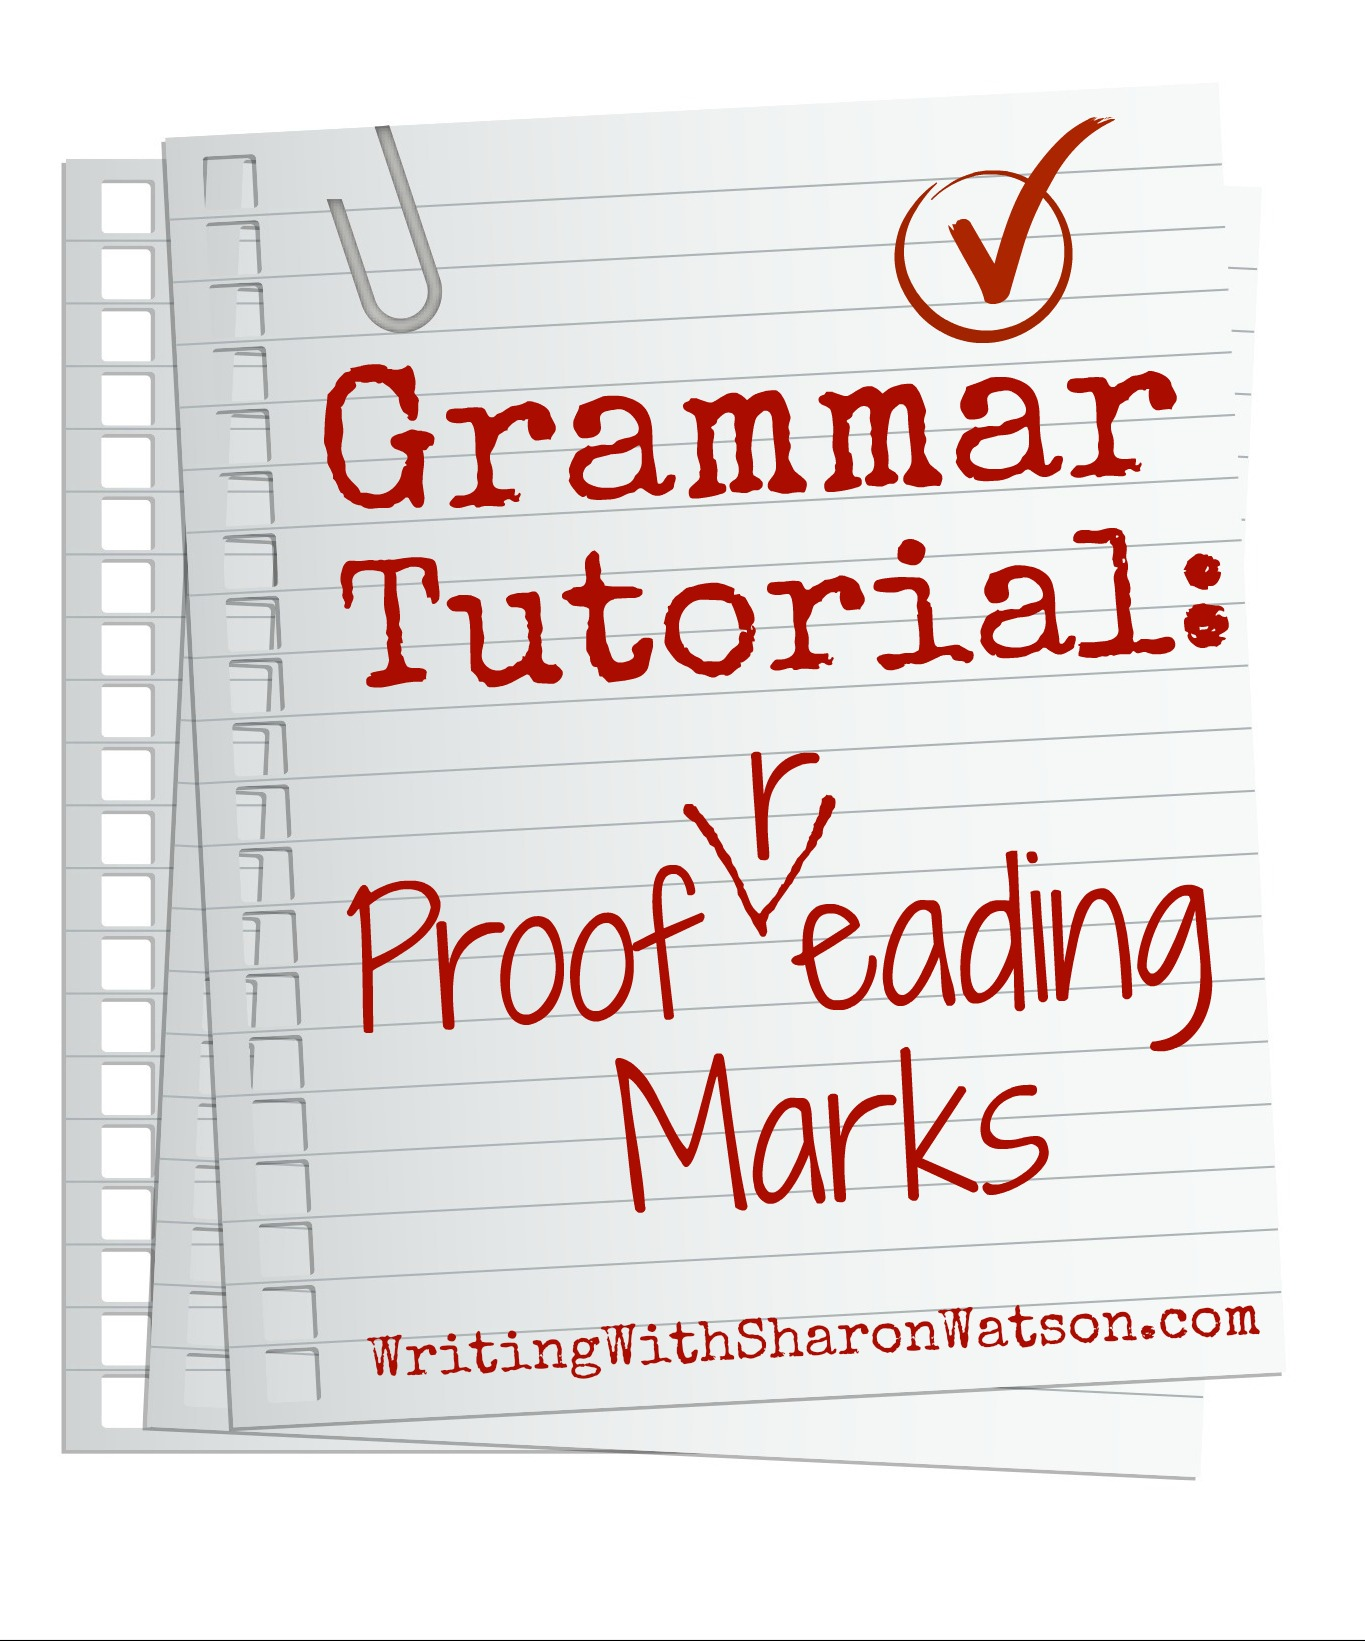 Proofreading Marks Tutorial